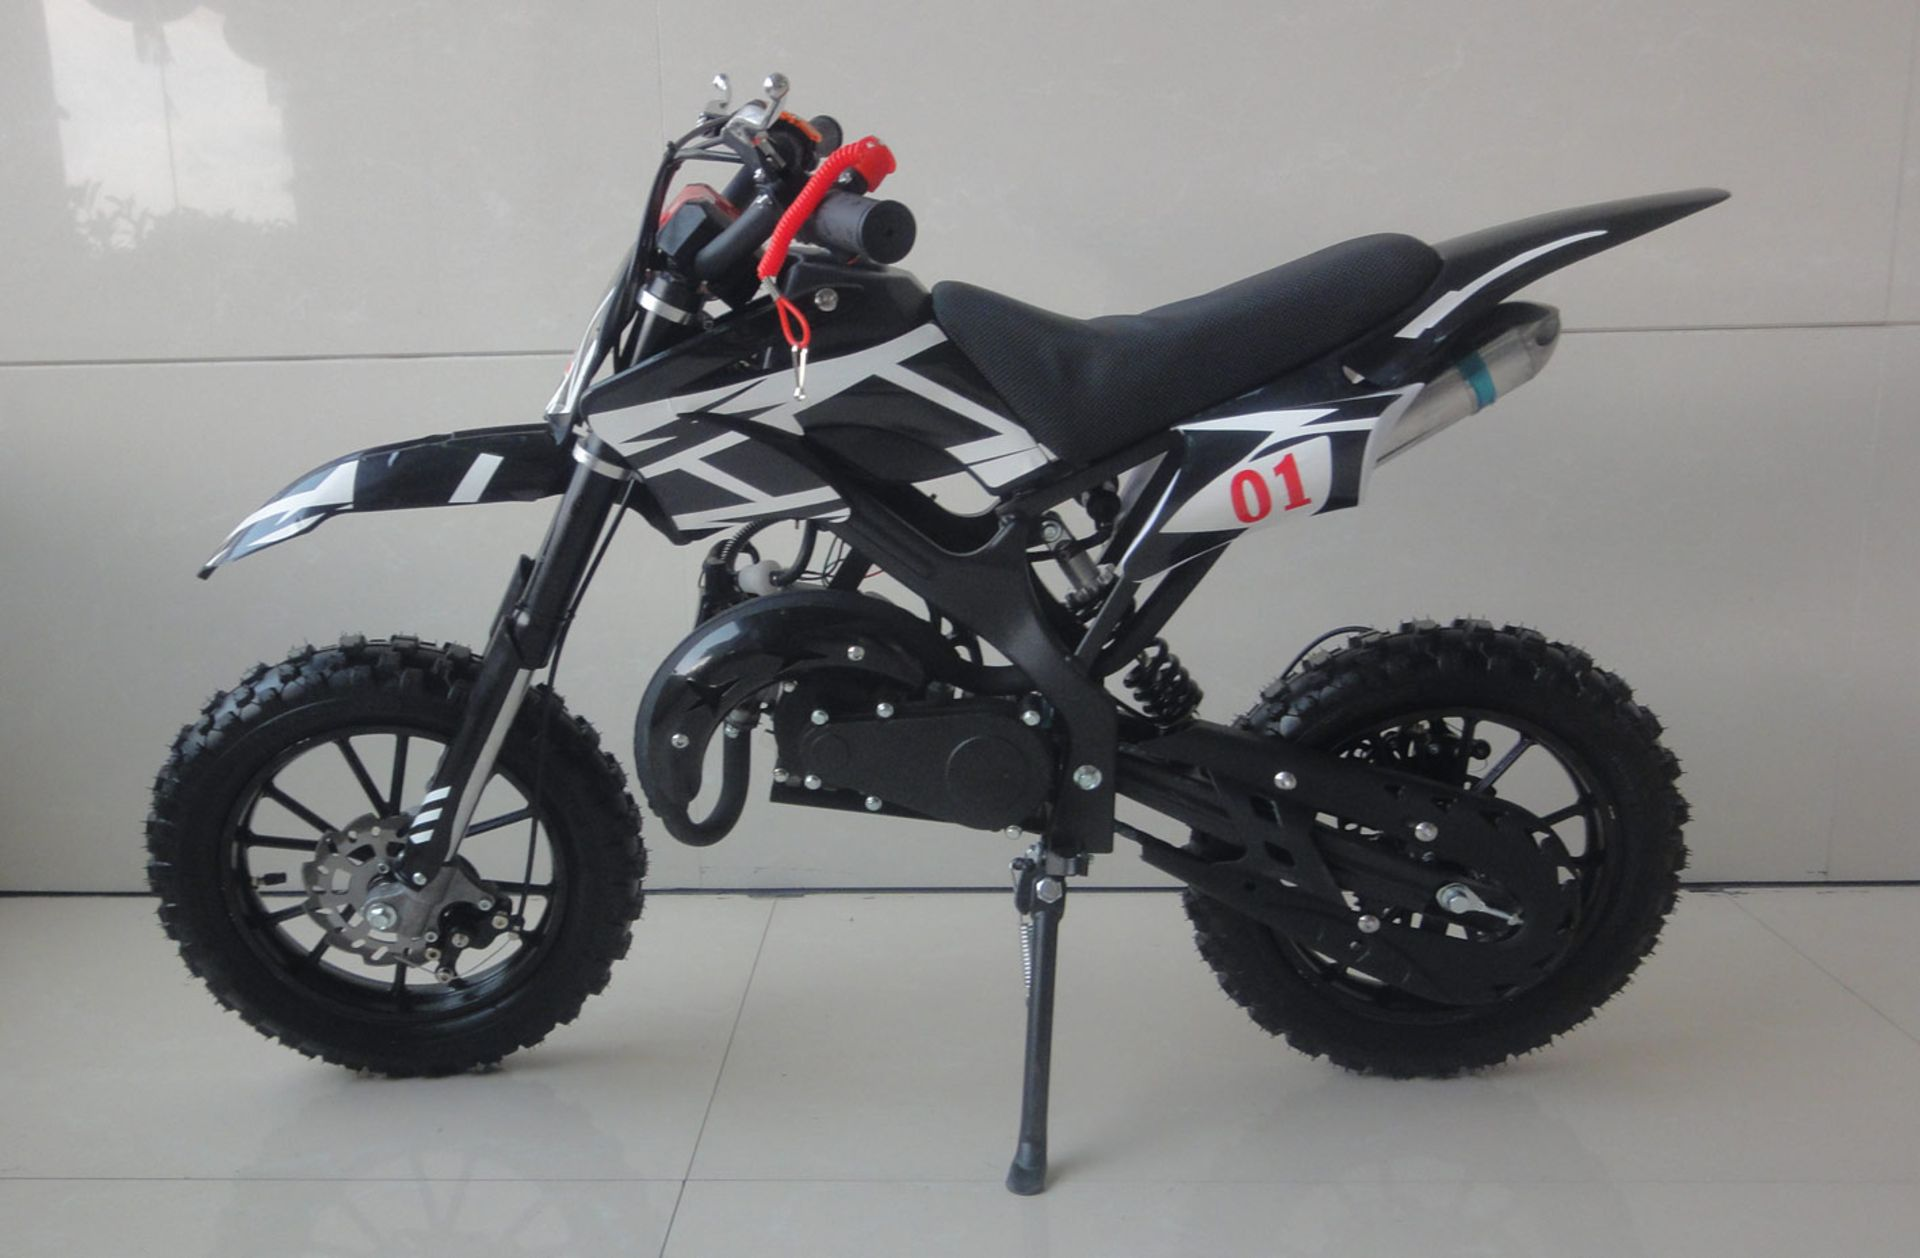 + VAT Brand New 49cc Falcon Mini Dirt Bike - Full Front & Rear Suspension - Disc Brakes - Easy Pull - Image 6 of 6